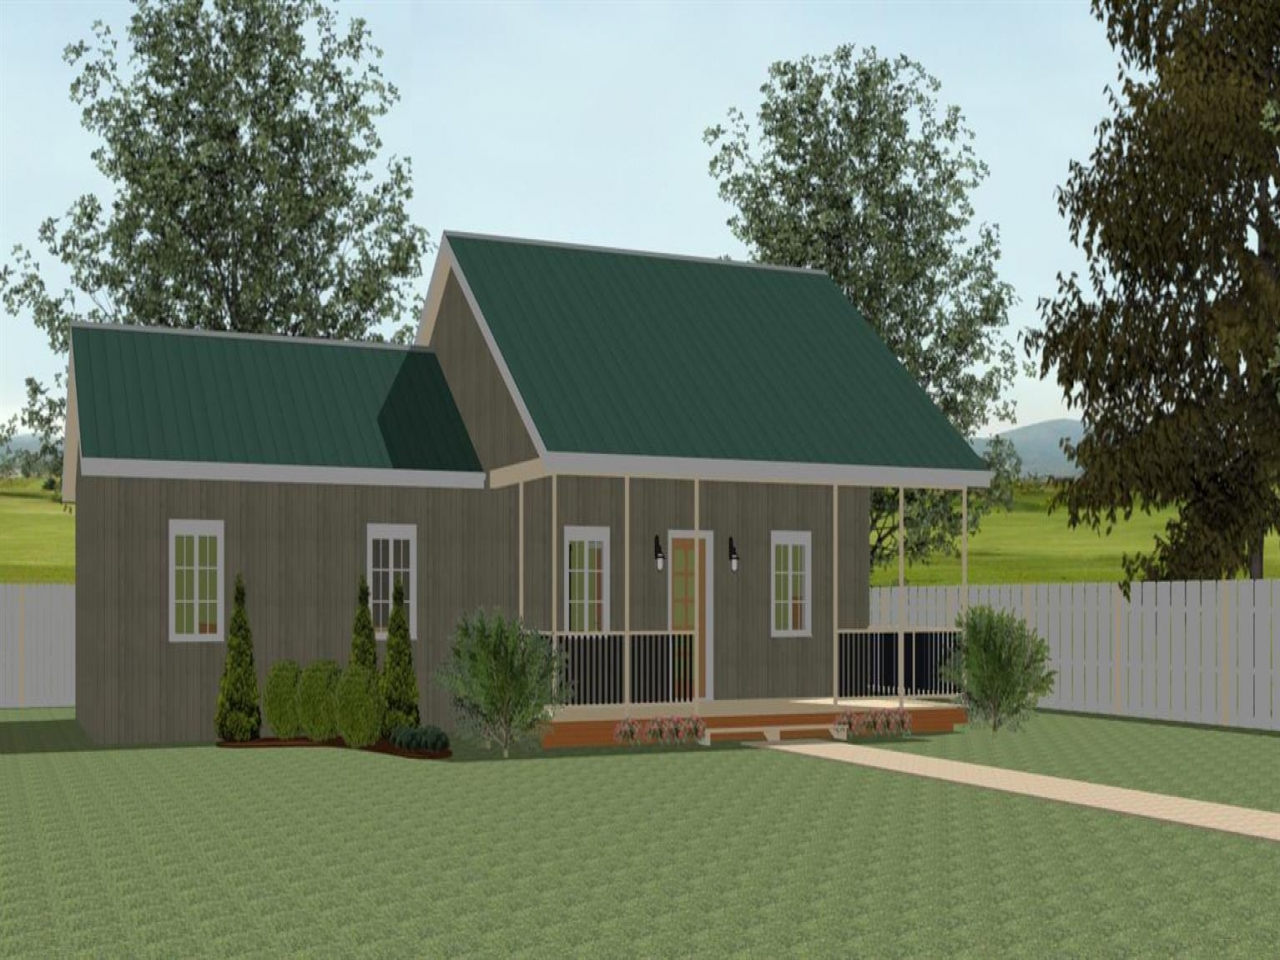 2000 Sq FT Shed Plans How Big Is 2000 Sq FT plans of